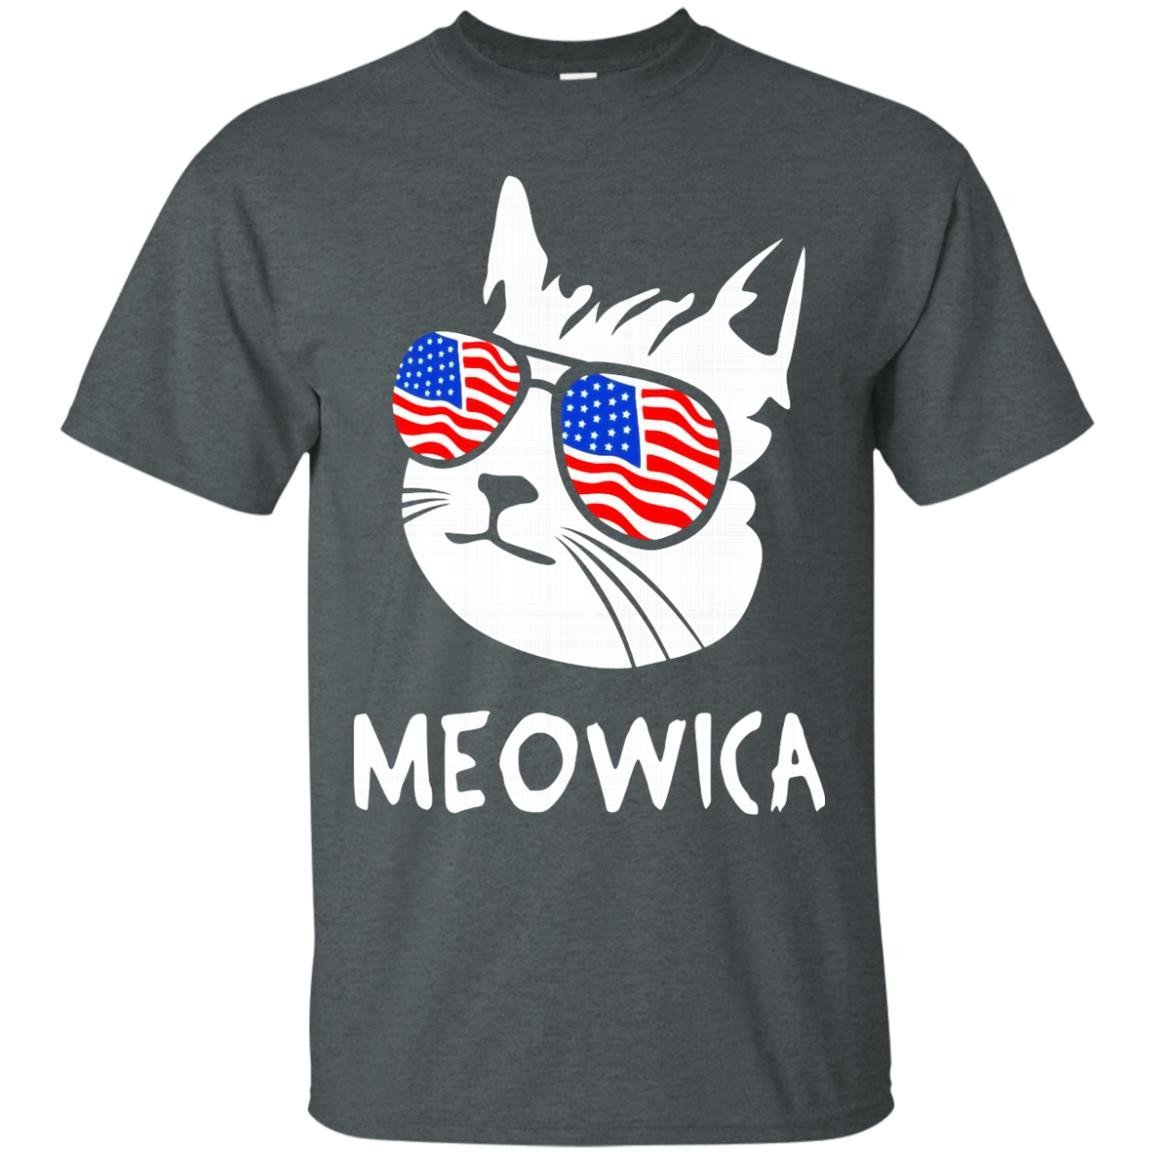 Funny Cat Meowica T Shirt USA Flag Glasses 4th of July